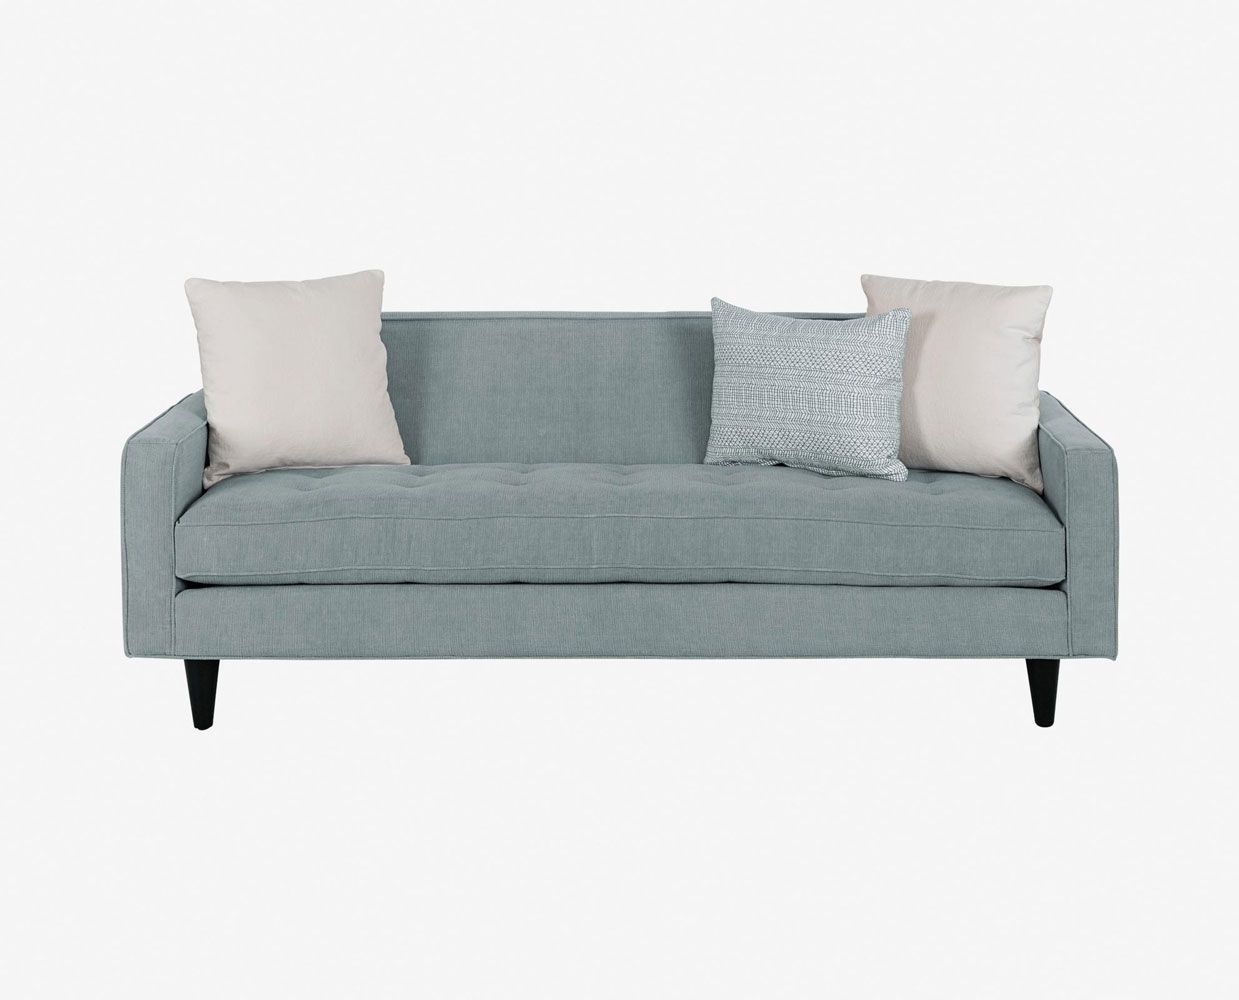 Remarkable Dania Clean Lines Of The Ingrid Sofa Create A Polished Theyellowbook Wood Chair Design Ideas Theyellowbookinfo